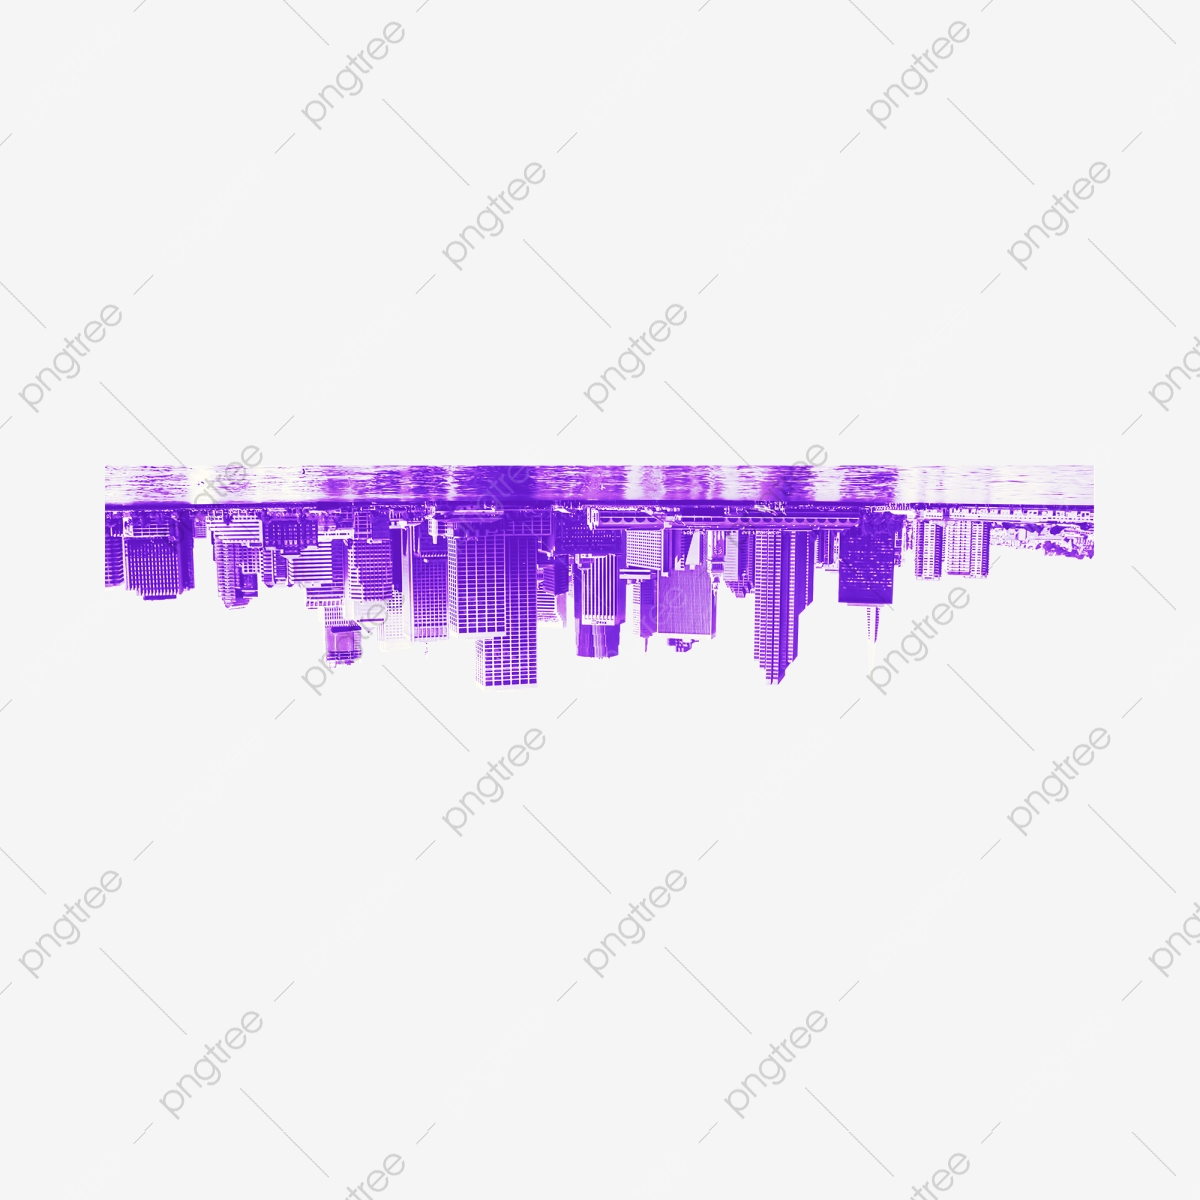 Upside Down Purple Buildings Upside Down Purple Building Png Transparent Clipart Image And Psd File For Free Download